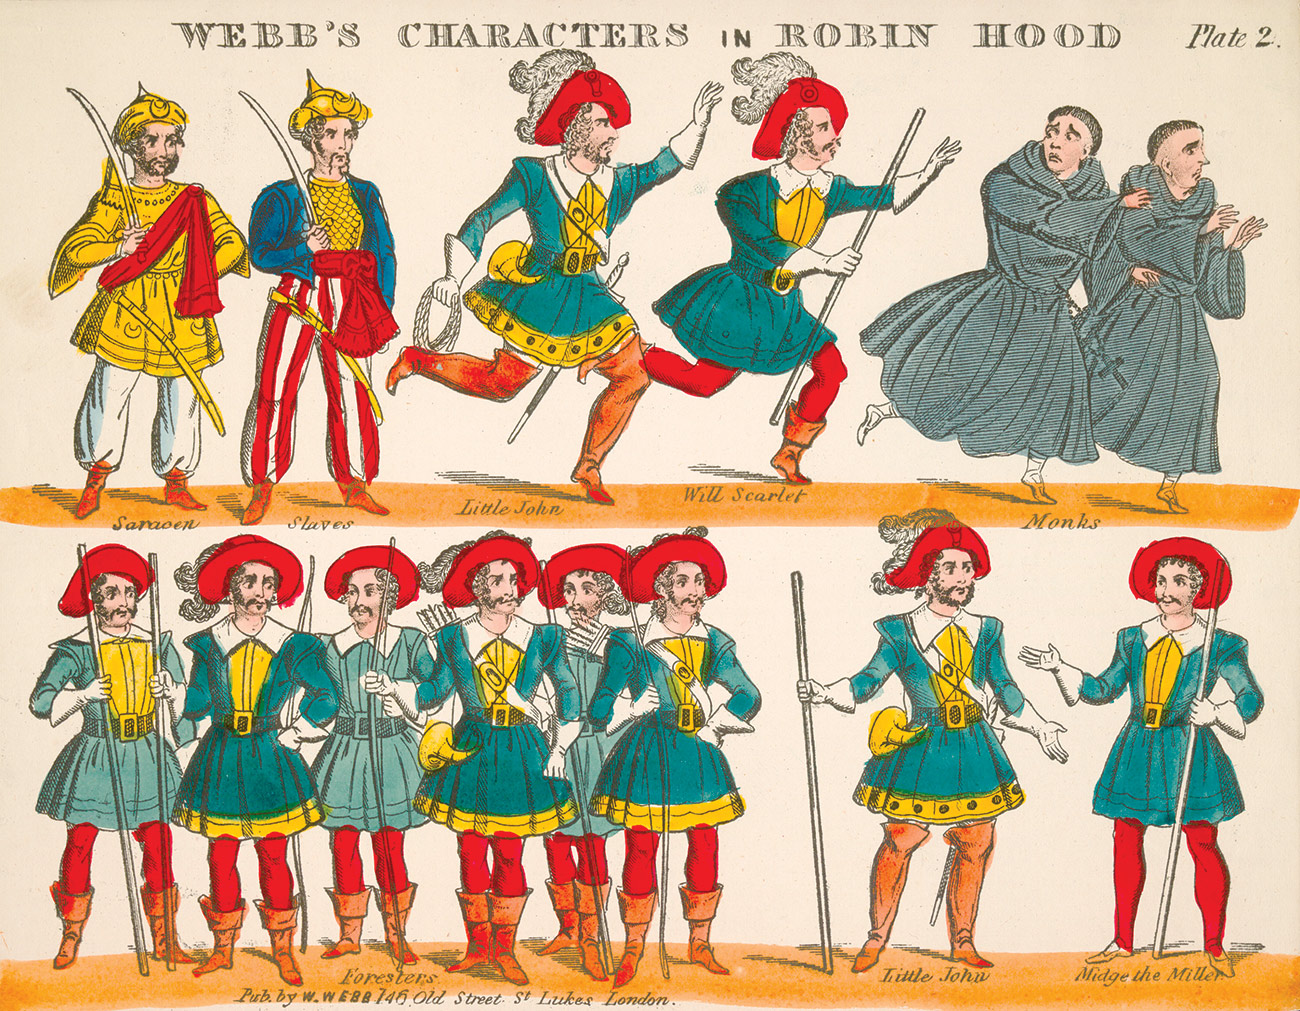 Illustration for Webb's Scenes and Characters in Robin Hood, c.1850.